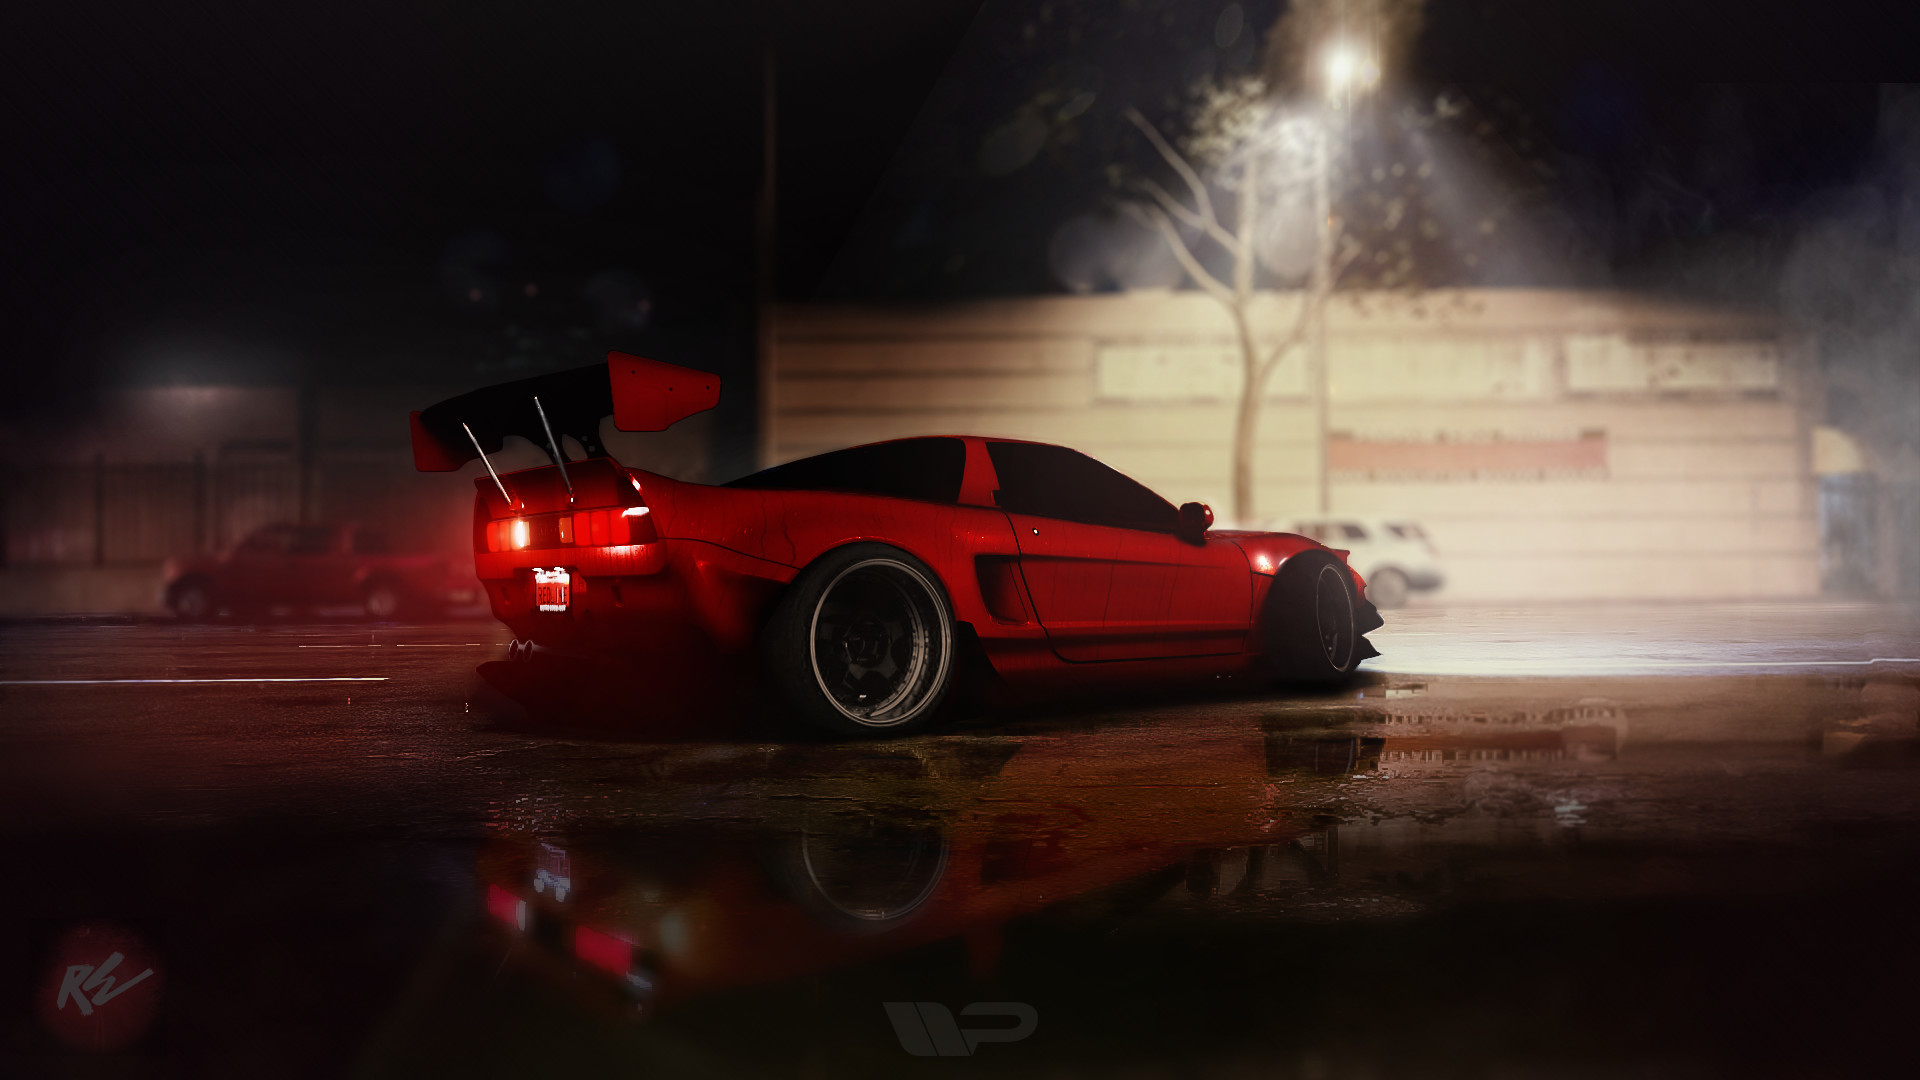 Res: 1920x1080, Honda NSX coated in Tra-Kyoto Rocket Bunny widebody kit